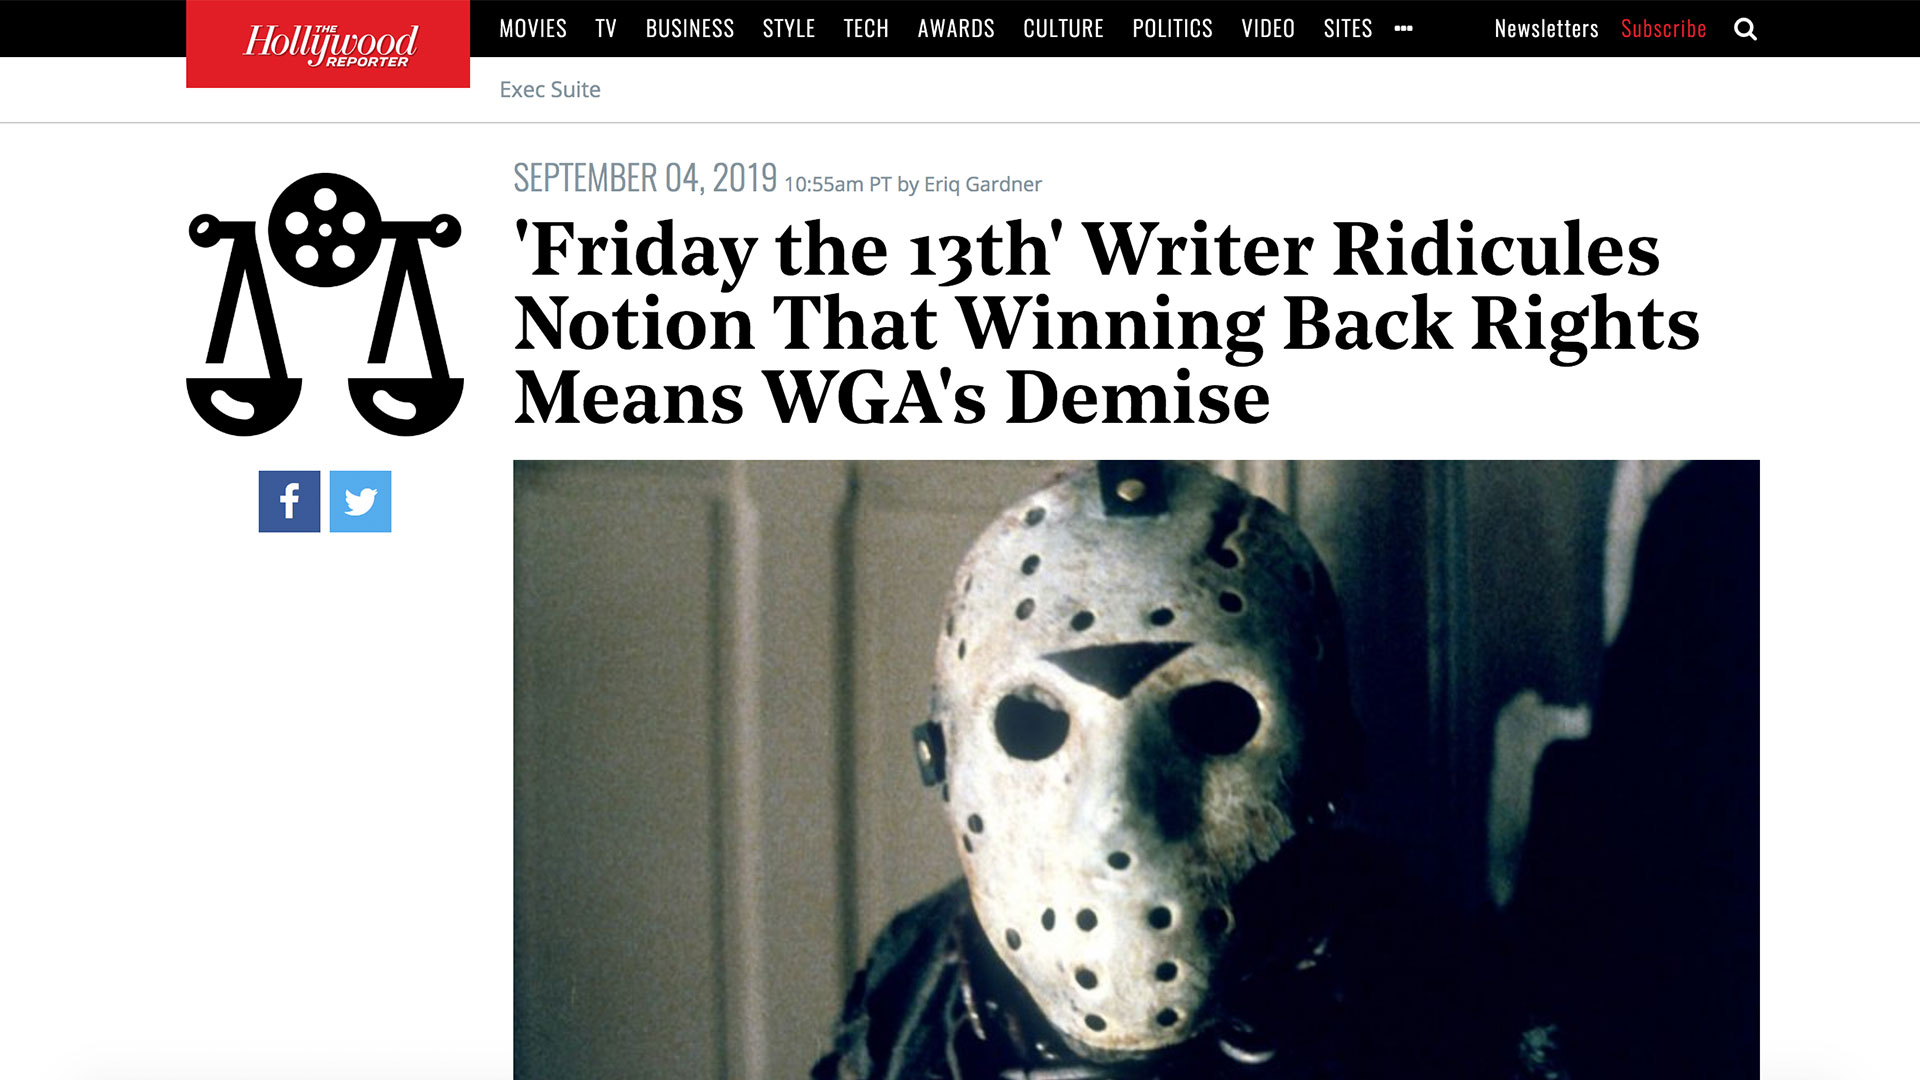 Fairness Rocks News 'Friday the 13th' Writer Ridicules Notion That Winning Back Rights Means WGA's Demise